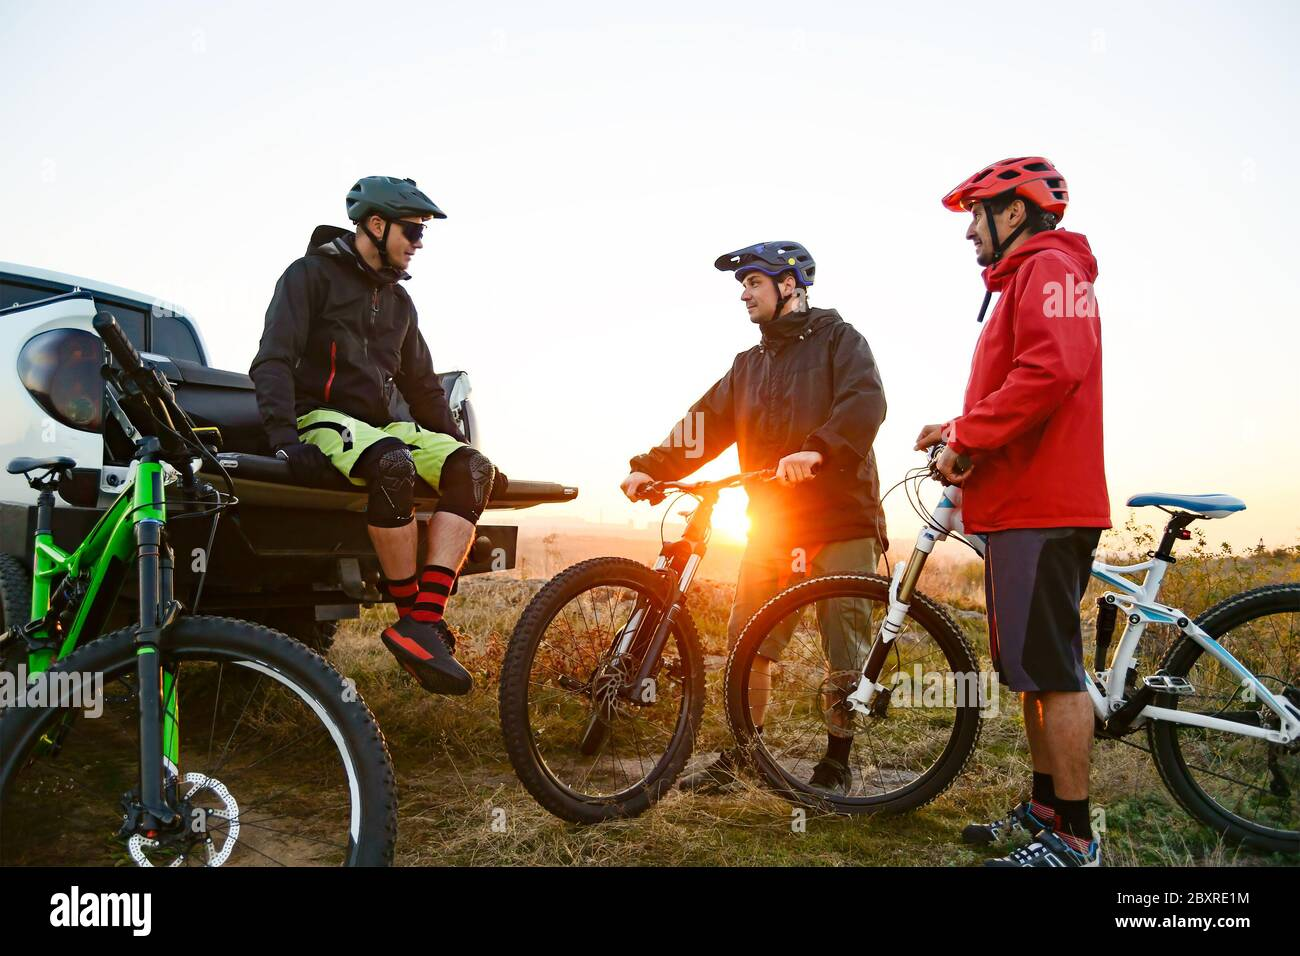 Friends Cyclists Resting near the Pickup Off Road Truck after Enduro Bike Riding in the Mountains at Warm Autumn Sunset. MTB Adventure and Car Travel Stock Photo